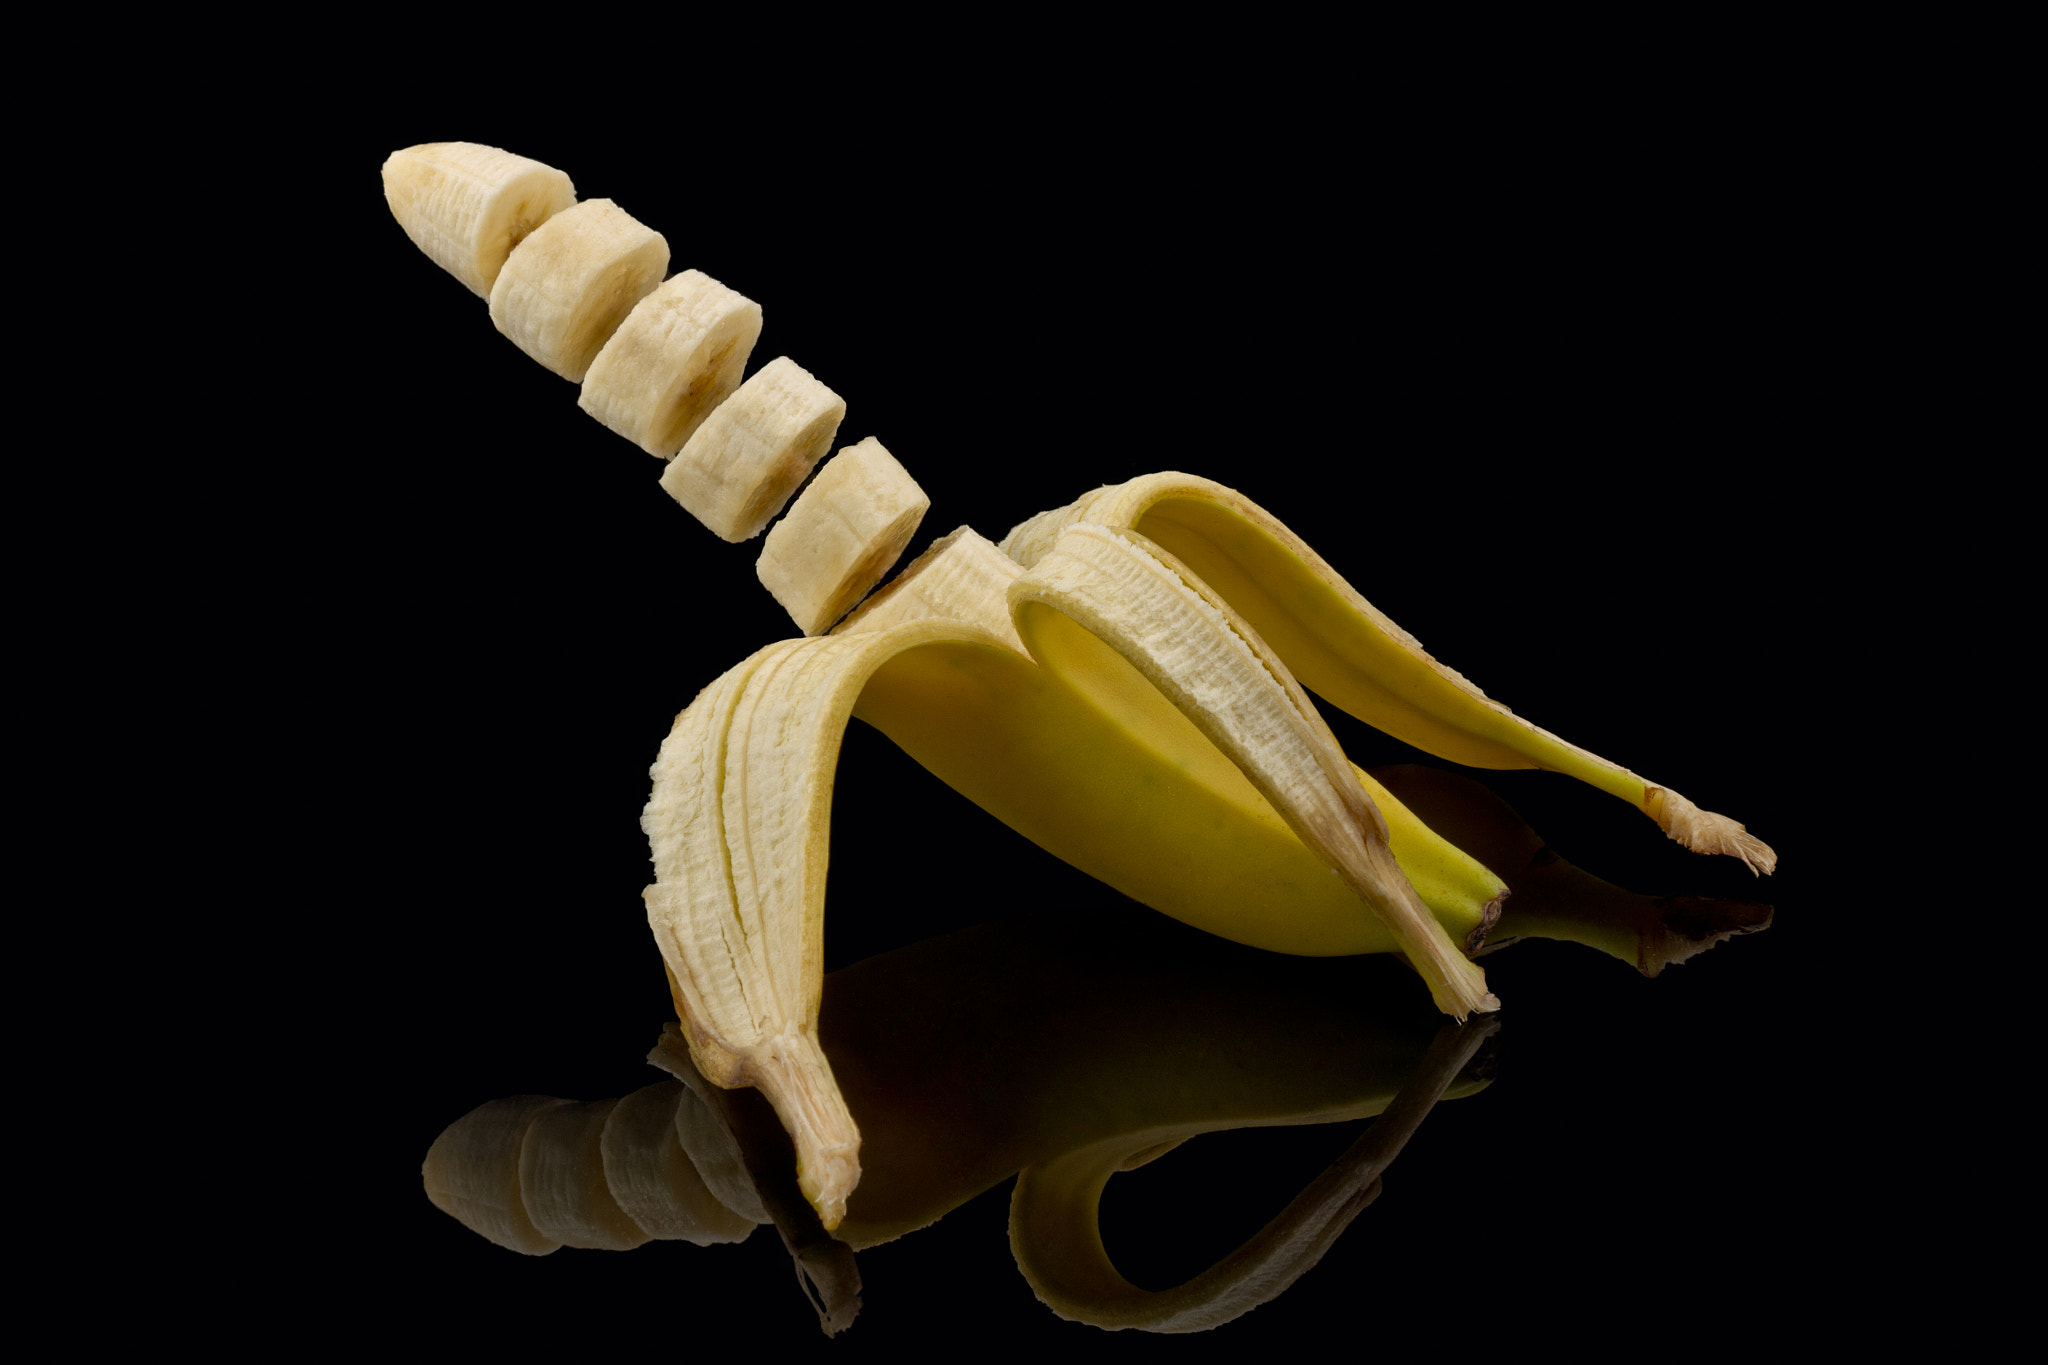 Photograph Sliced banana by Gert Lavsen on 500px